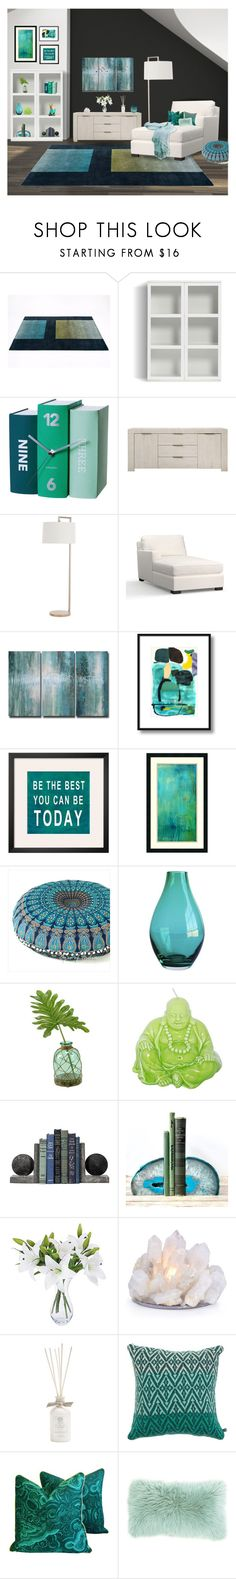 """""""Untitled #1163"""" by rachelbarkho ❤ liked on Polyvore featuring interior, interiors, interior design, home, home decor, interior decorating, Umbra, Karlsson, Nico and Arteriors"""